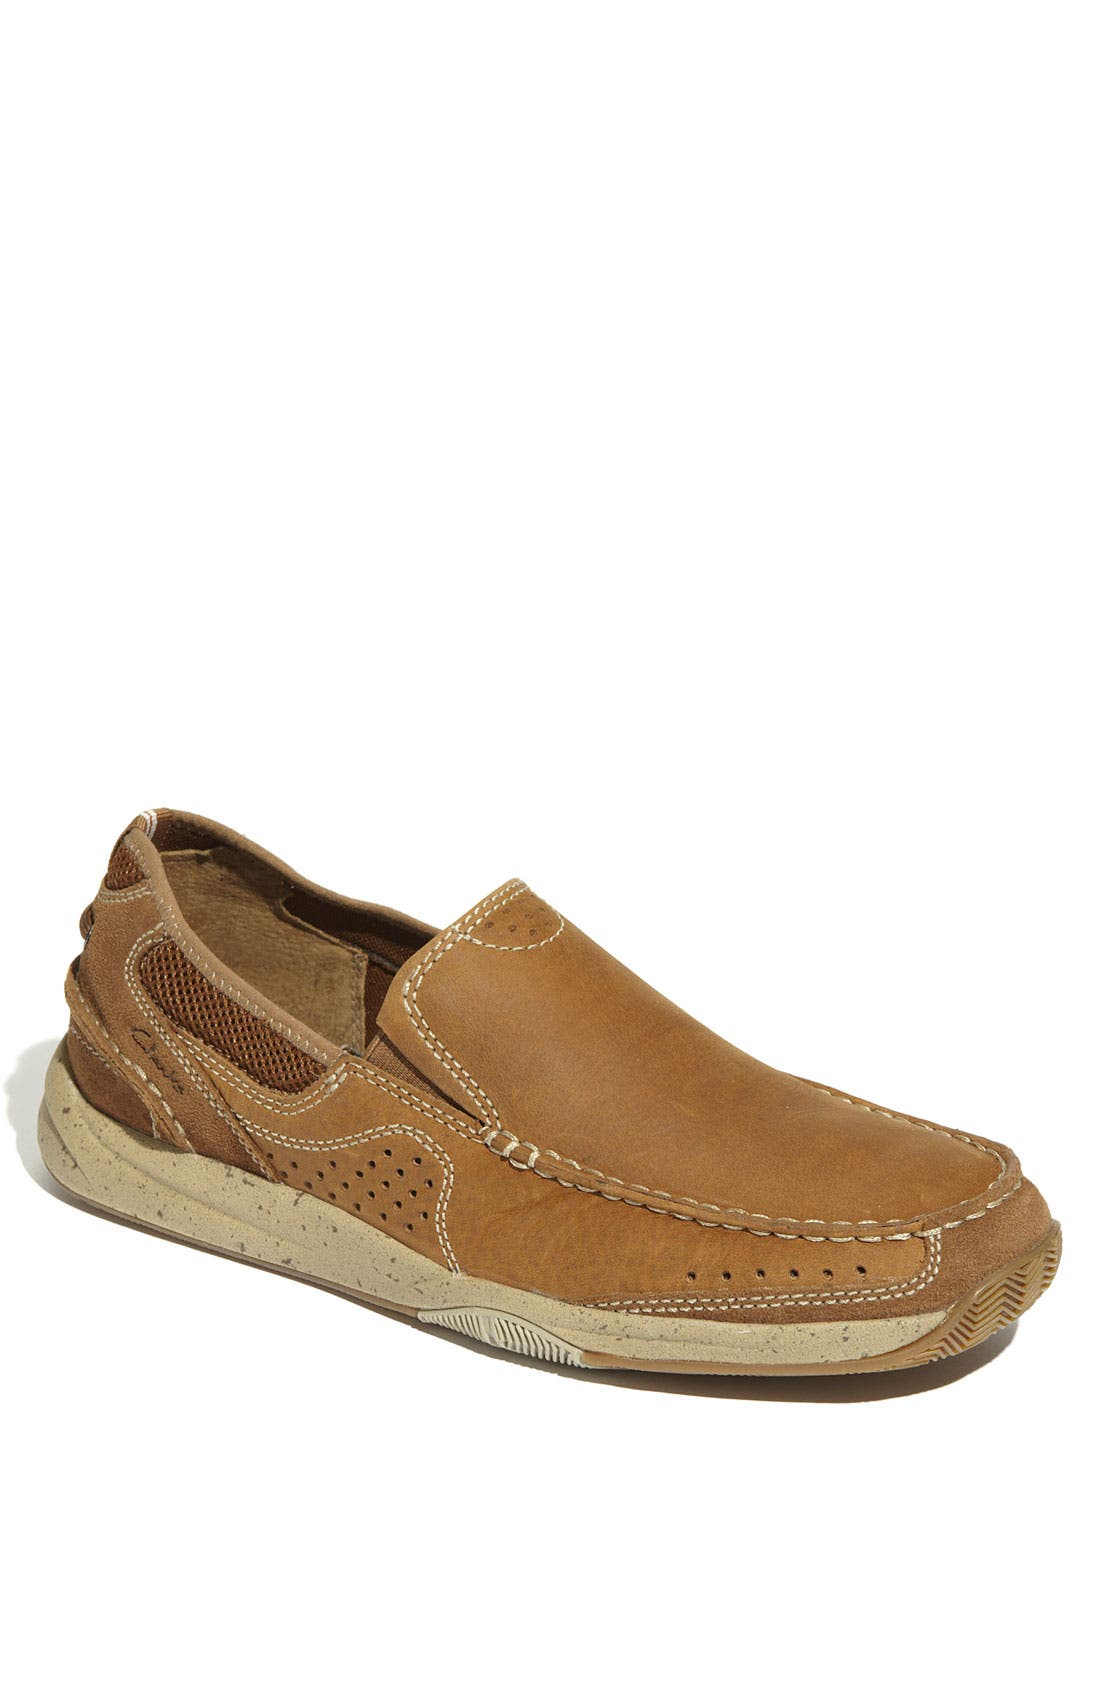 Alternate Image 1 Selected - Clarks® 'Vestal' Slip-On